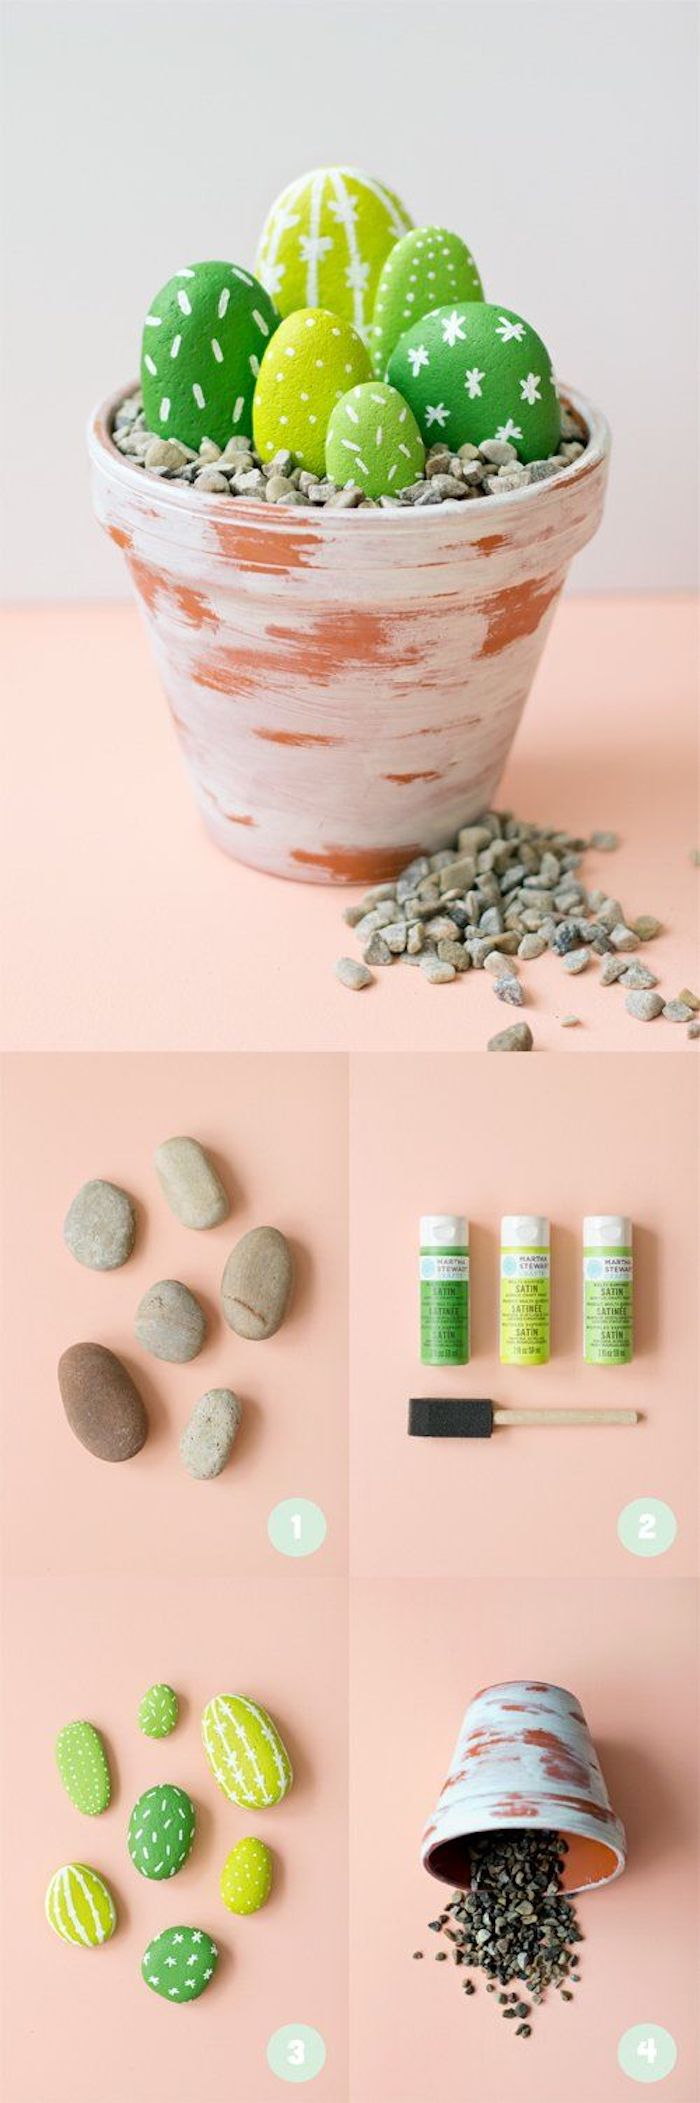 ceramic pot, green cactuses, made of rocks, arts and crafts for toddlers, step by step, diy tutorial